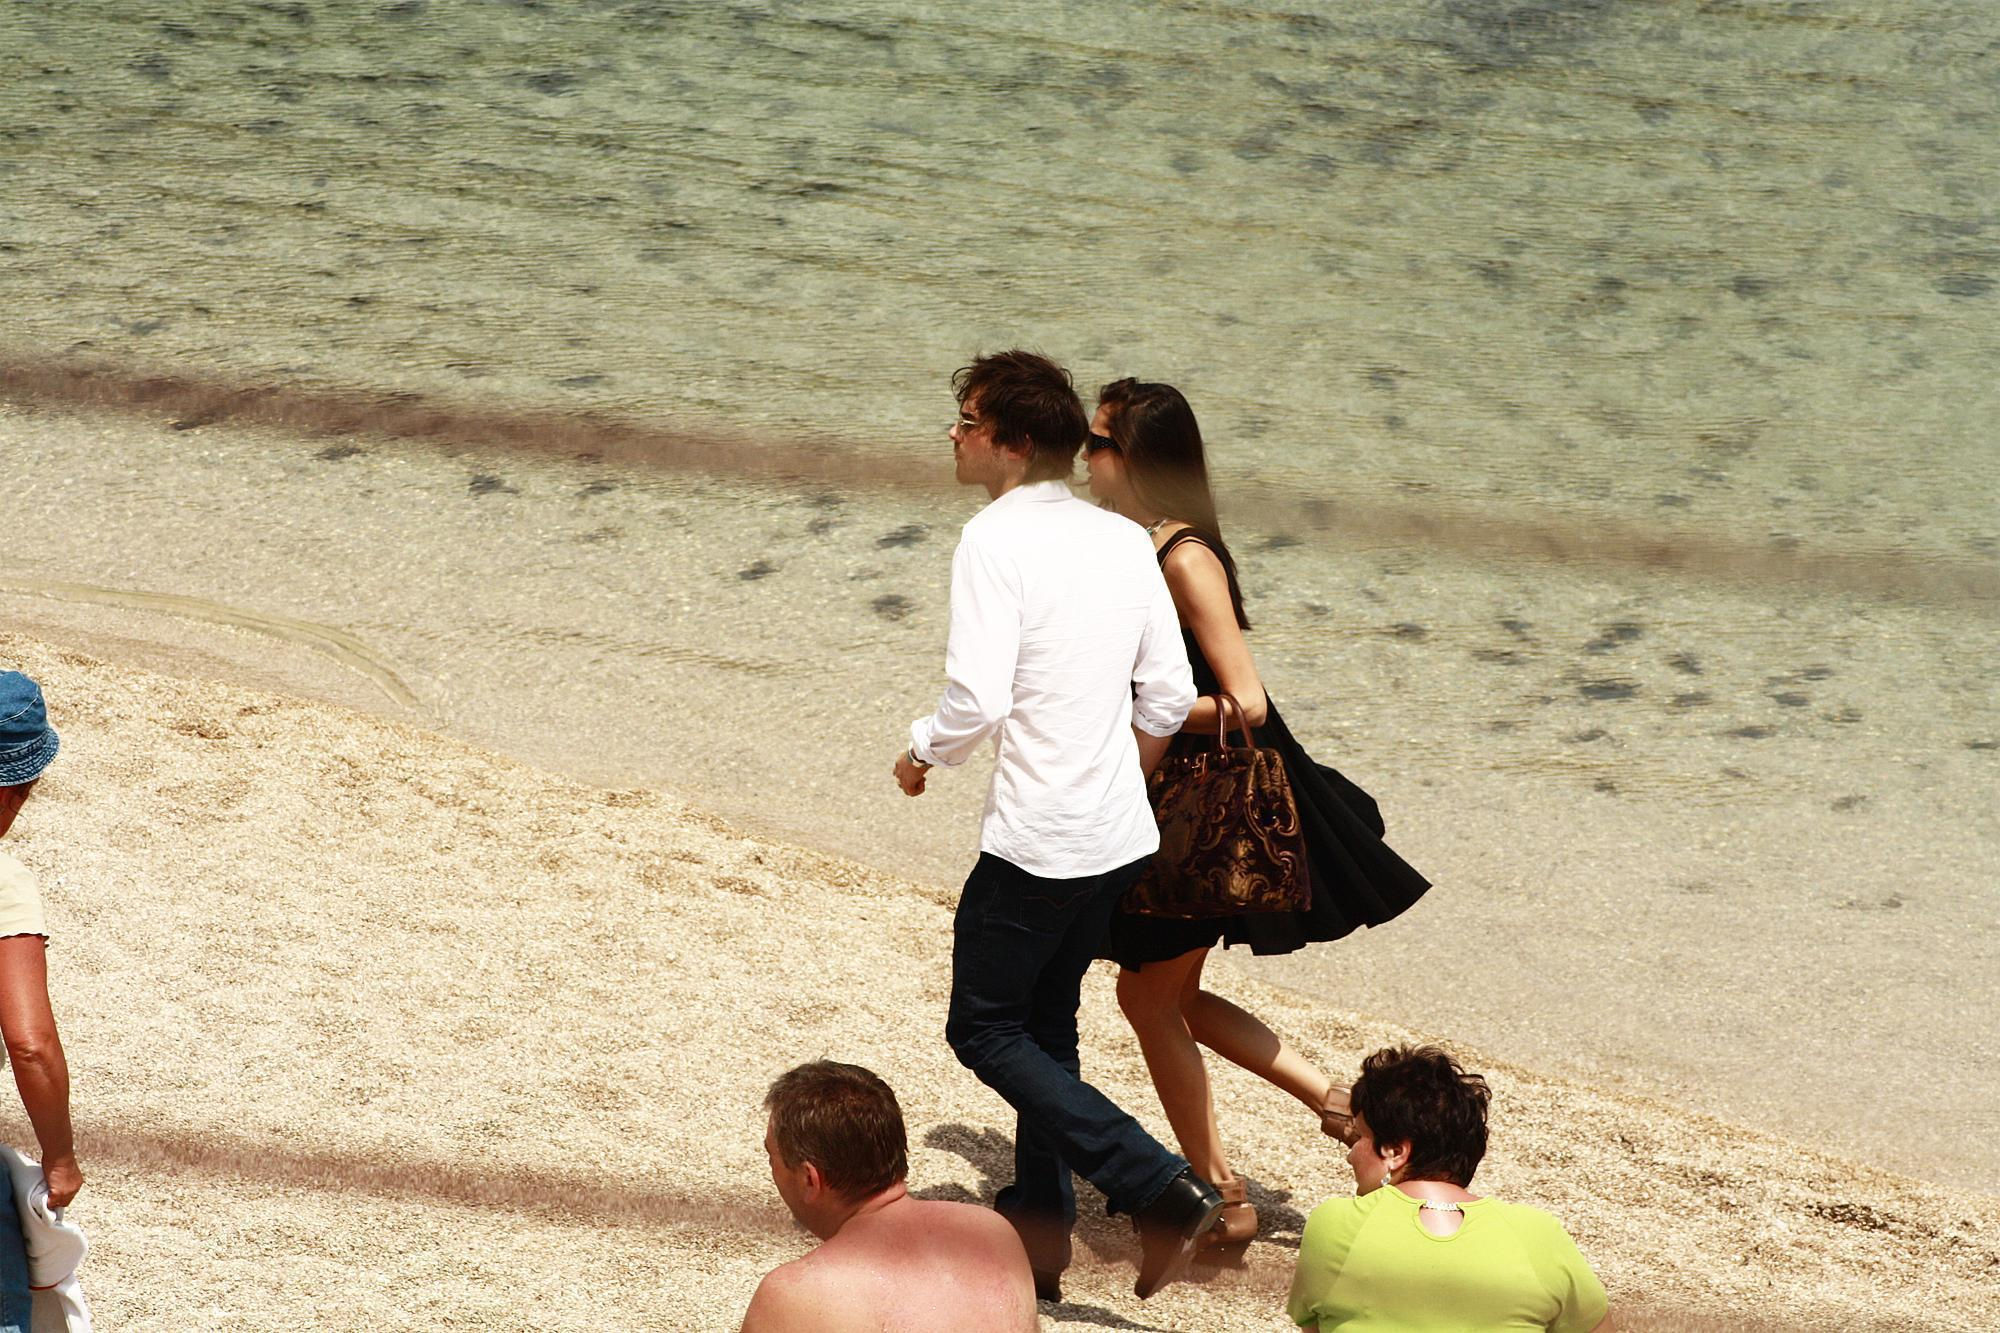 Ian/Nina walking on the beach - ian-somerhalder-and-nina-dobrev photo